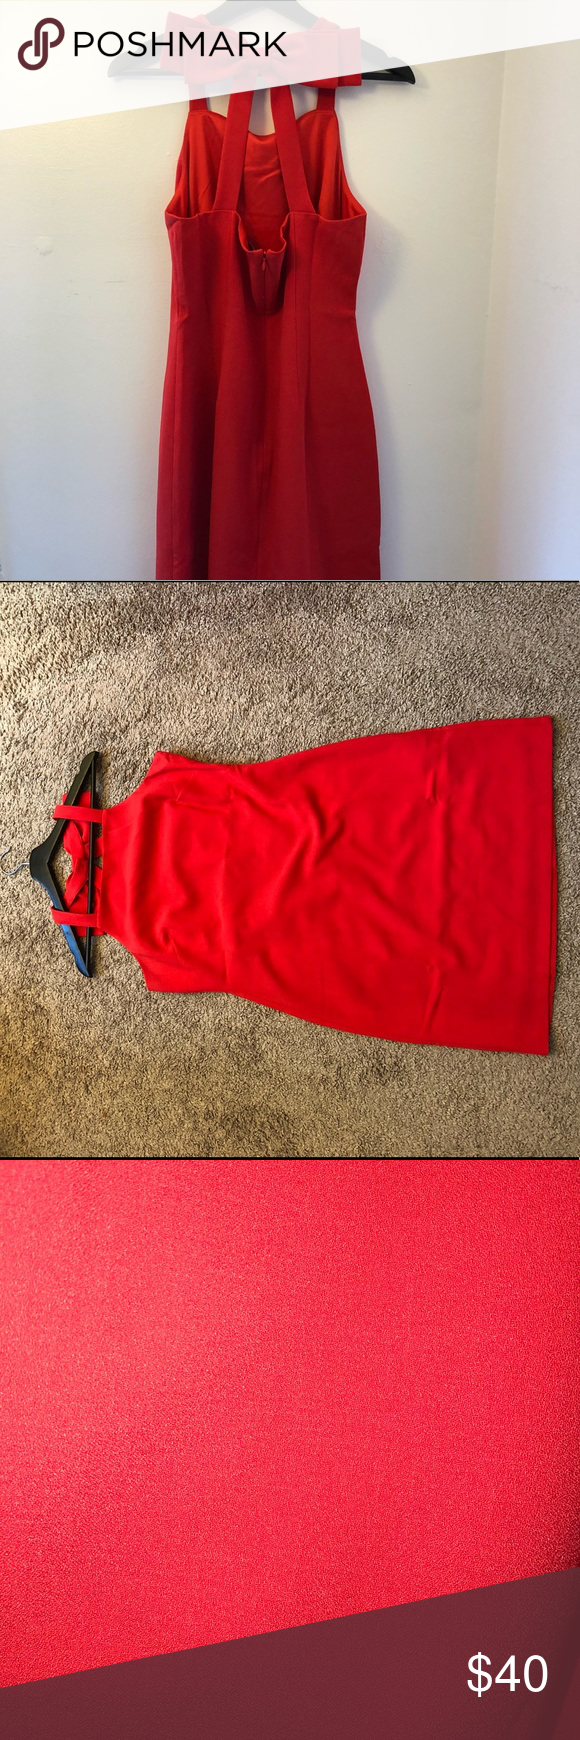 Red Dress With Bowtie Back Detail By Vince Camuto Red Dress Dresses Vince Camuto [ 1740 x 580 Pixel ]